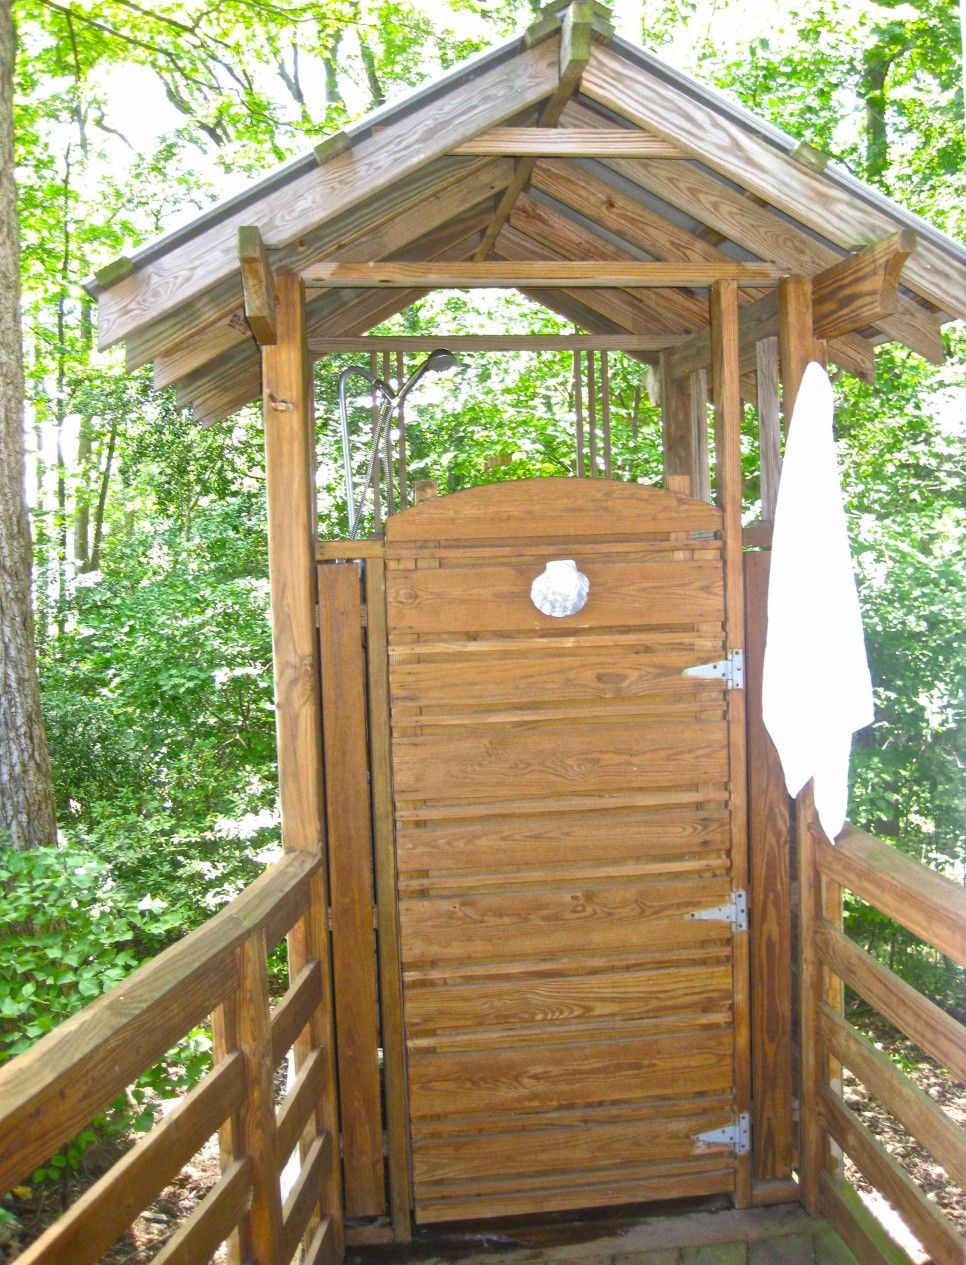 Exceptional Bathroom, Wooden Traditional Outdoor Shower Enclosure With Wooden Door  Canopy And Metal Roof Also Wooden